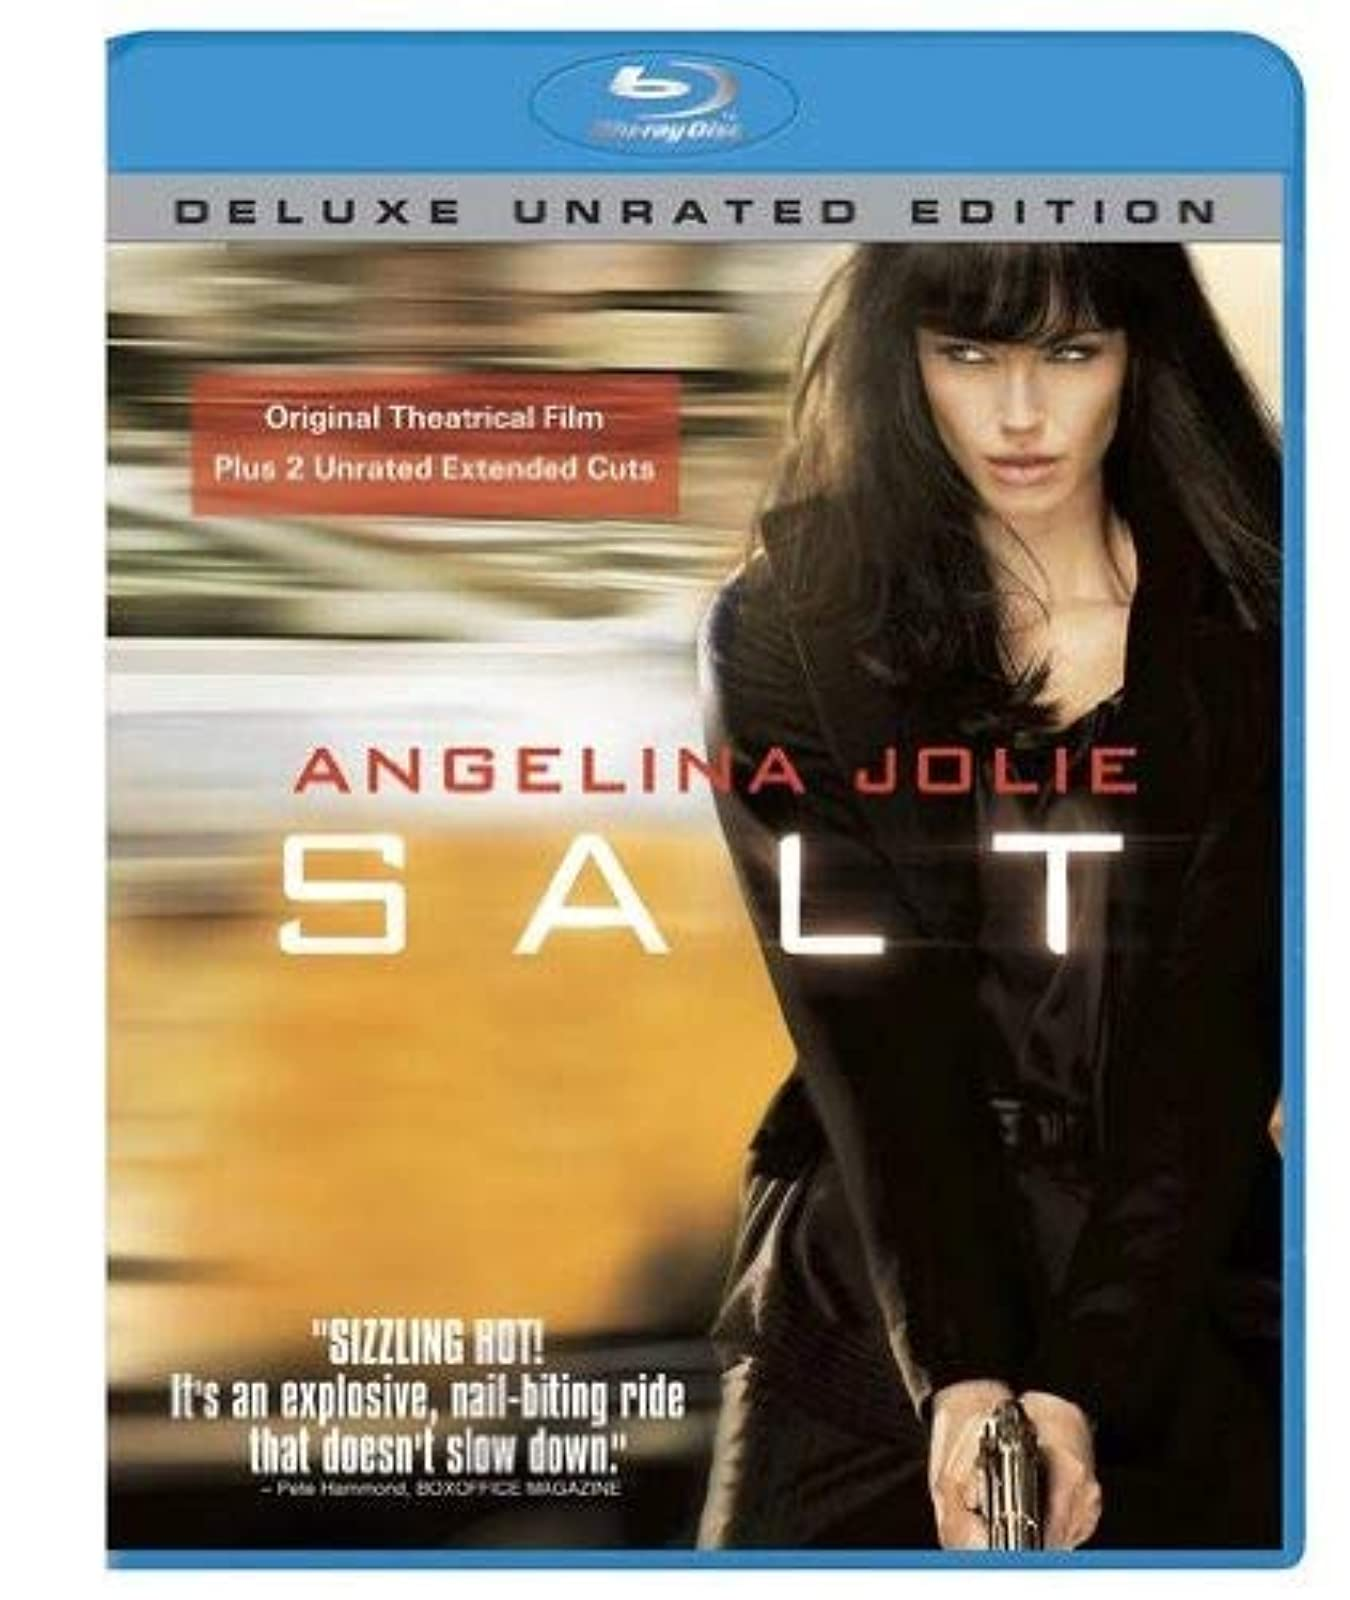 Salt Deluxe Unrated Edition Blu-Ray On Blu-Ray With Angelina Jolie